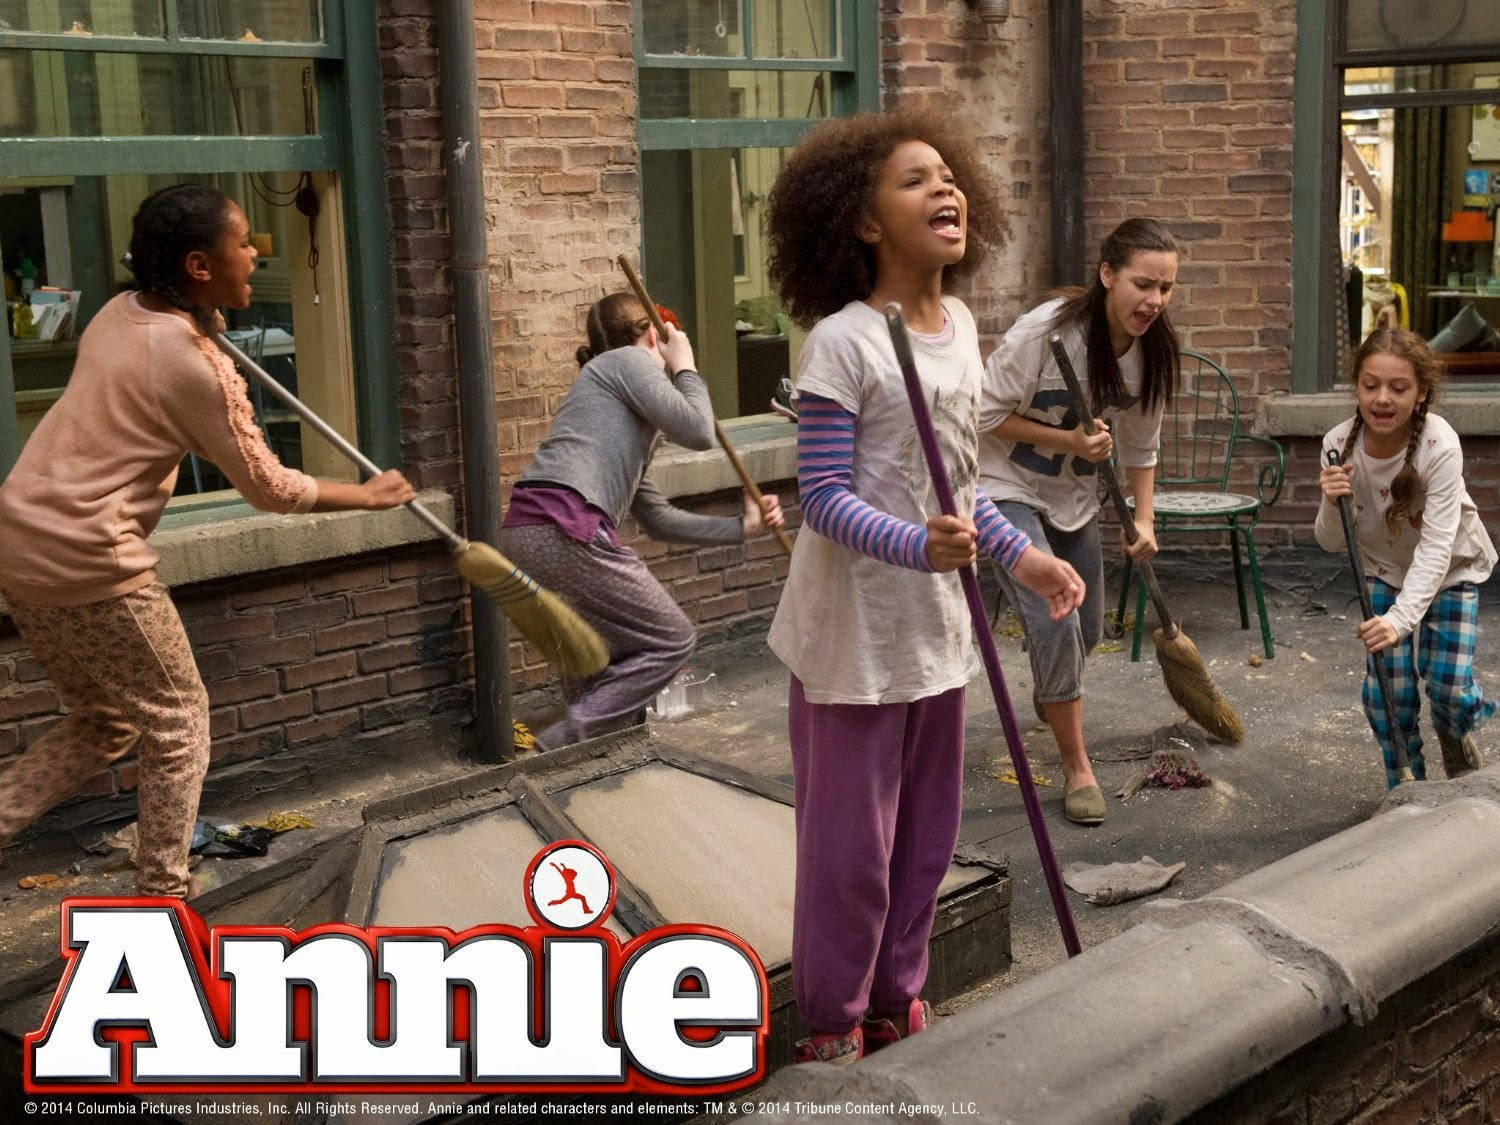 Annie The Movie 2014 Cast annie 2014 release date, cast & news: should ...